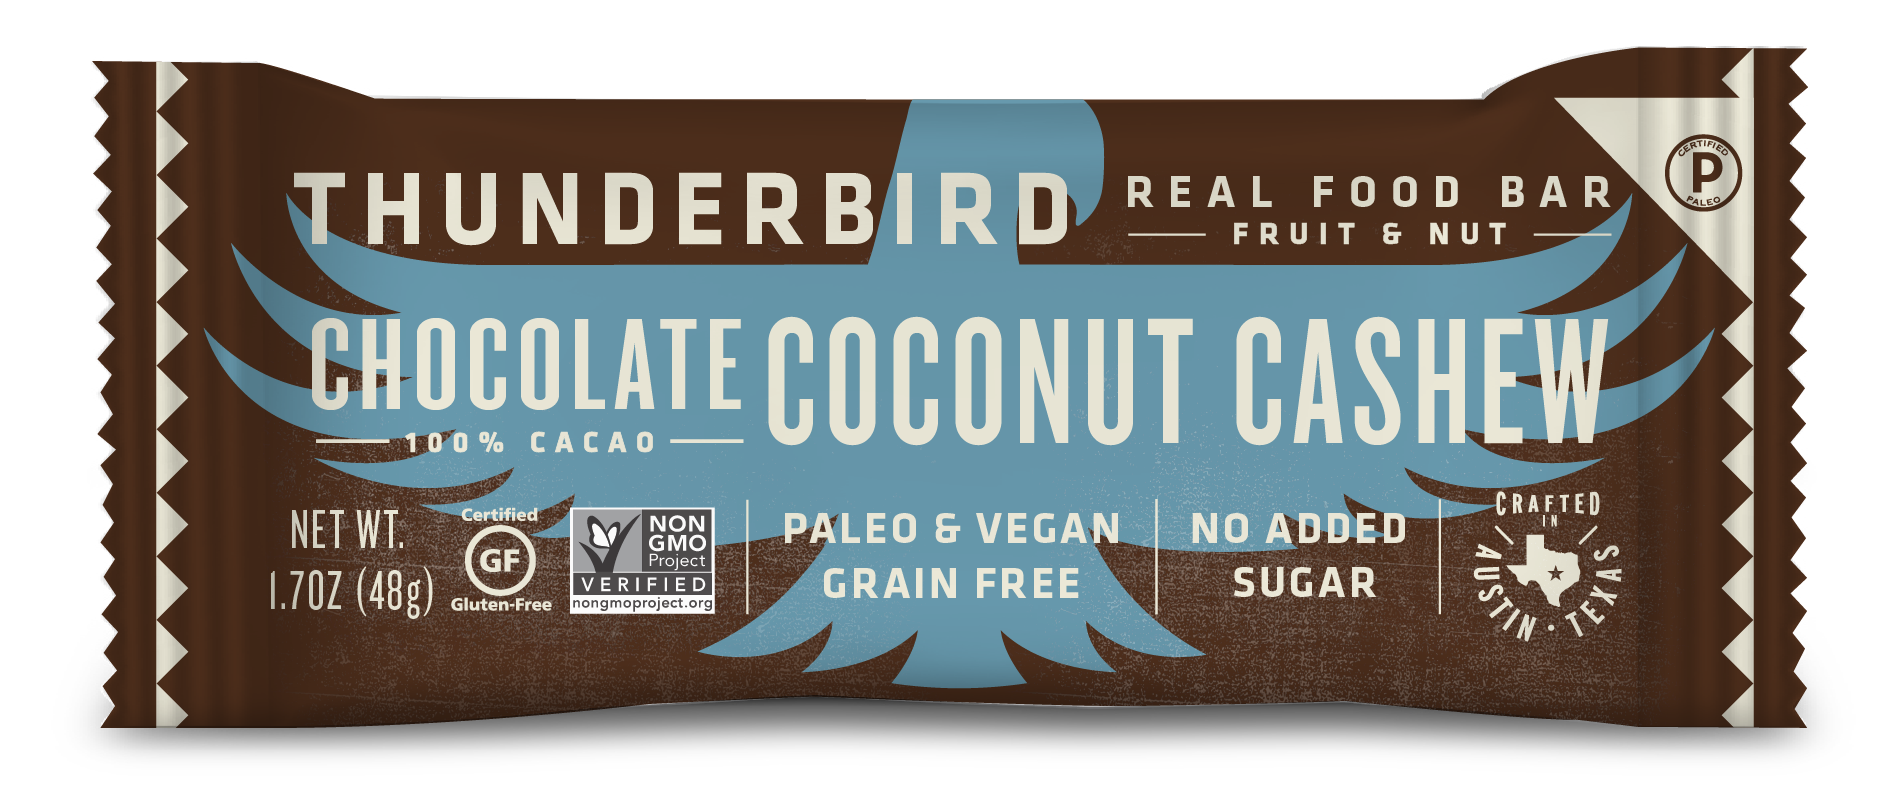 Chocolate Coconut Cashew - Box of 15 Bars